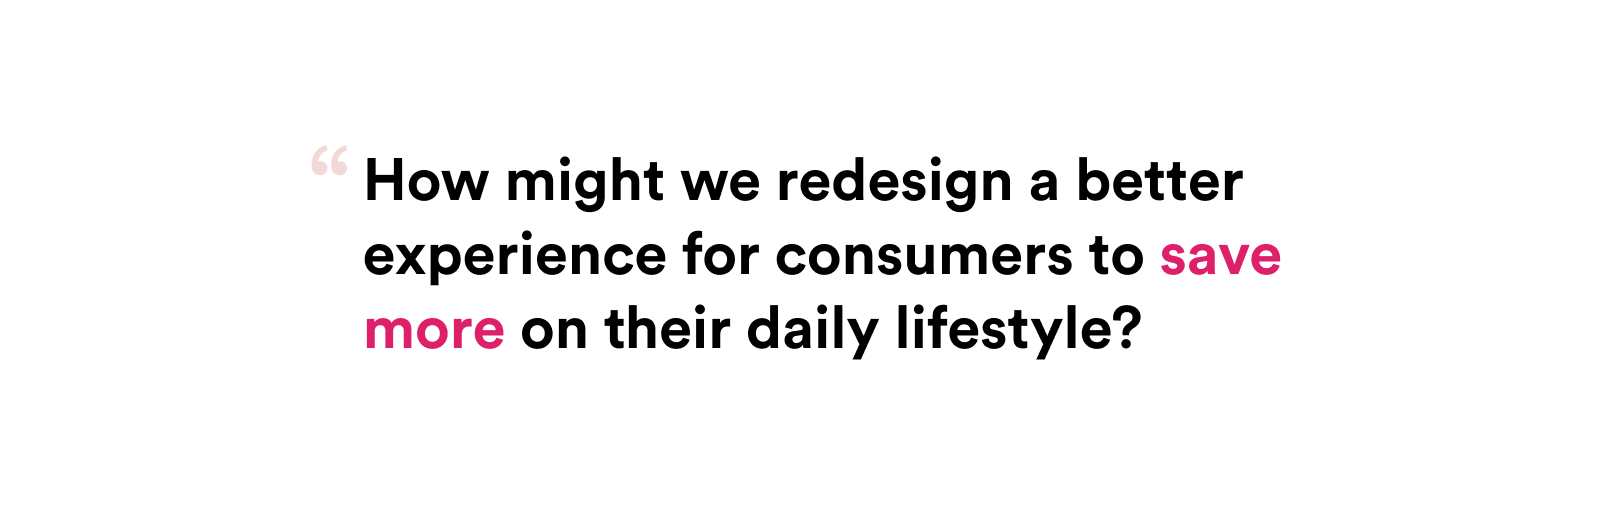 How might we redesign a better experience for consumers to save more on their daily lifestyle?